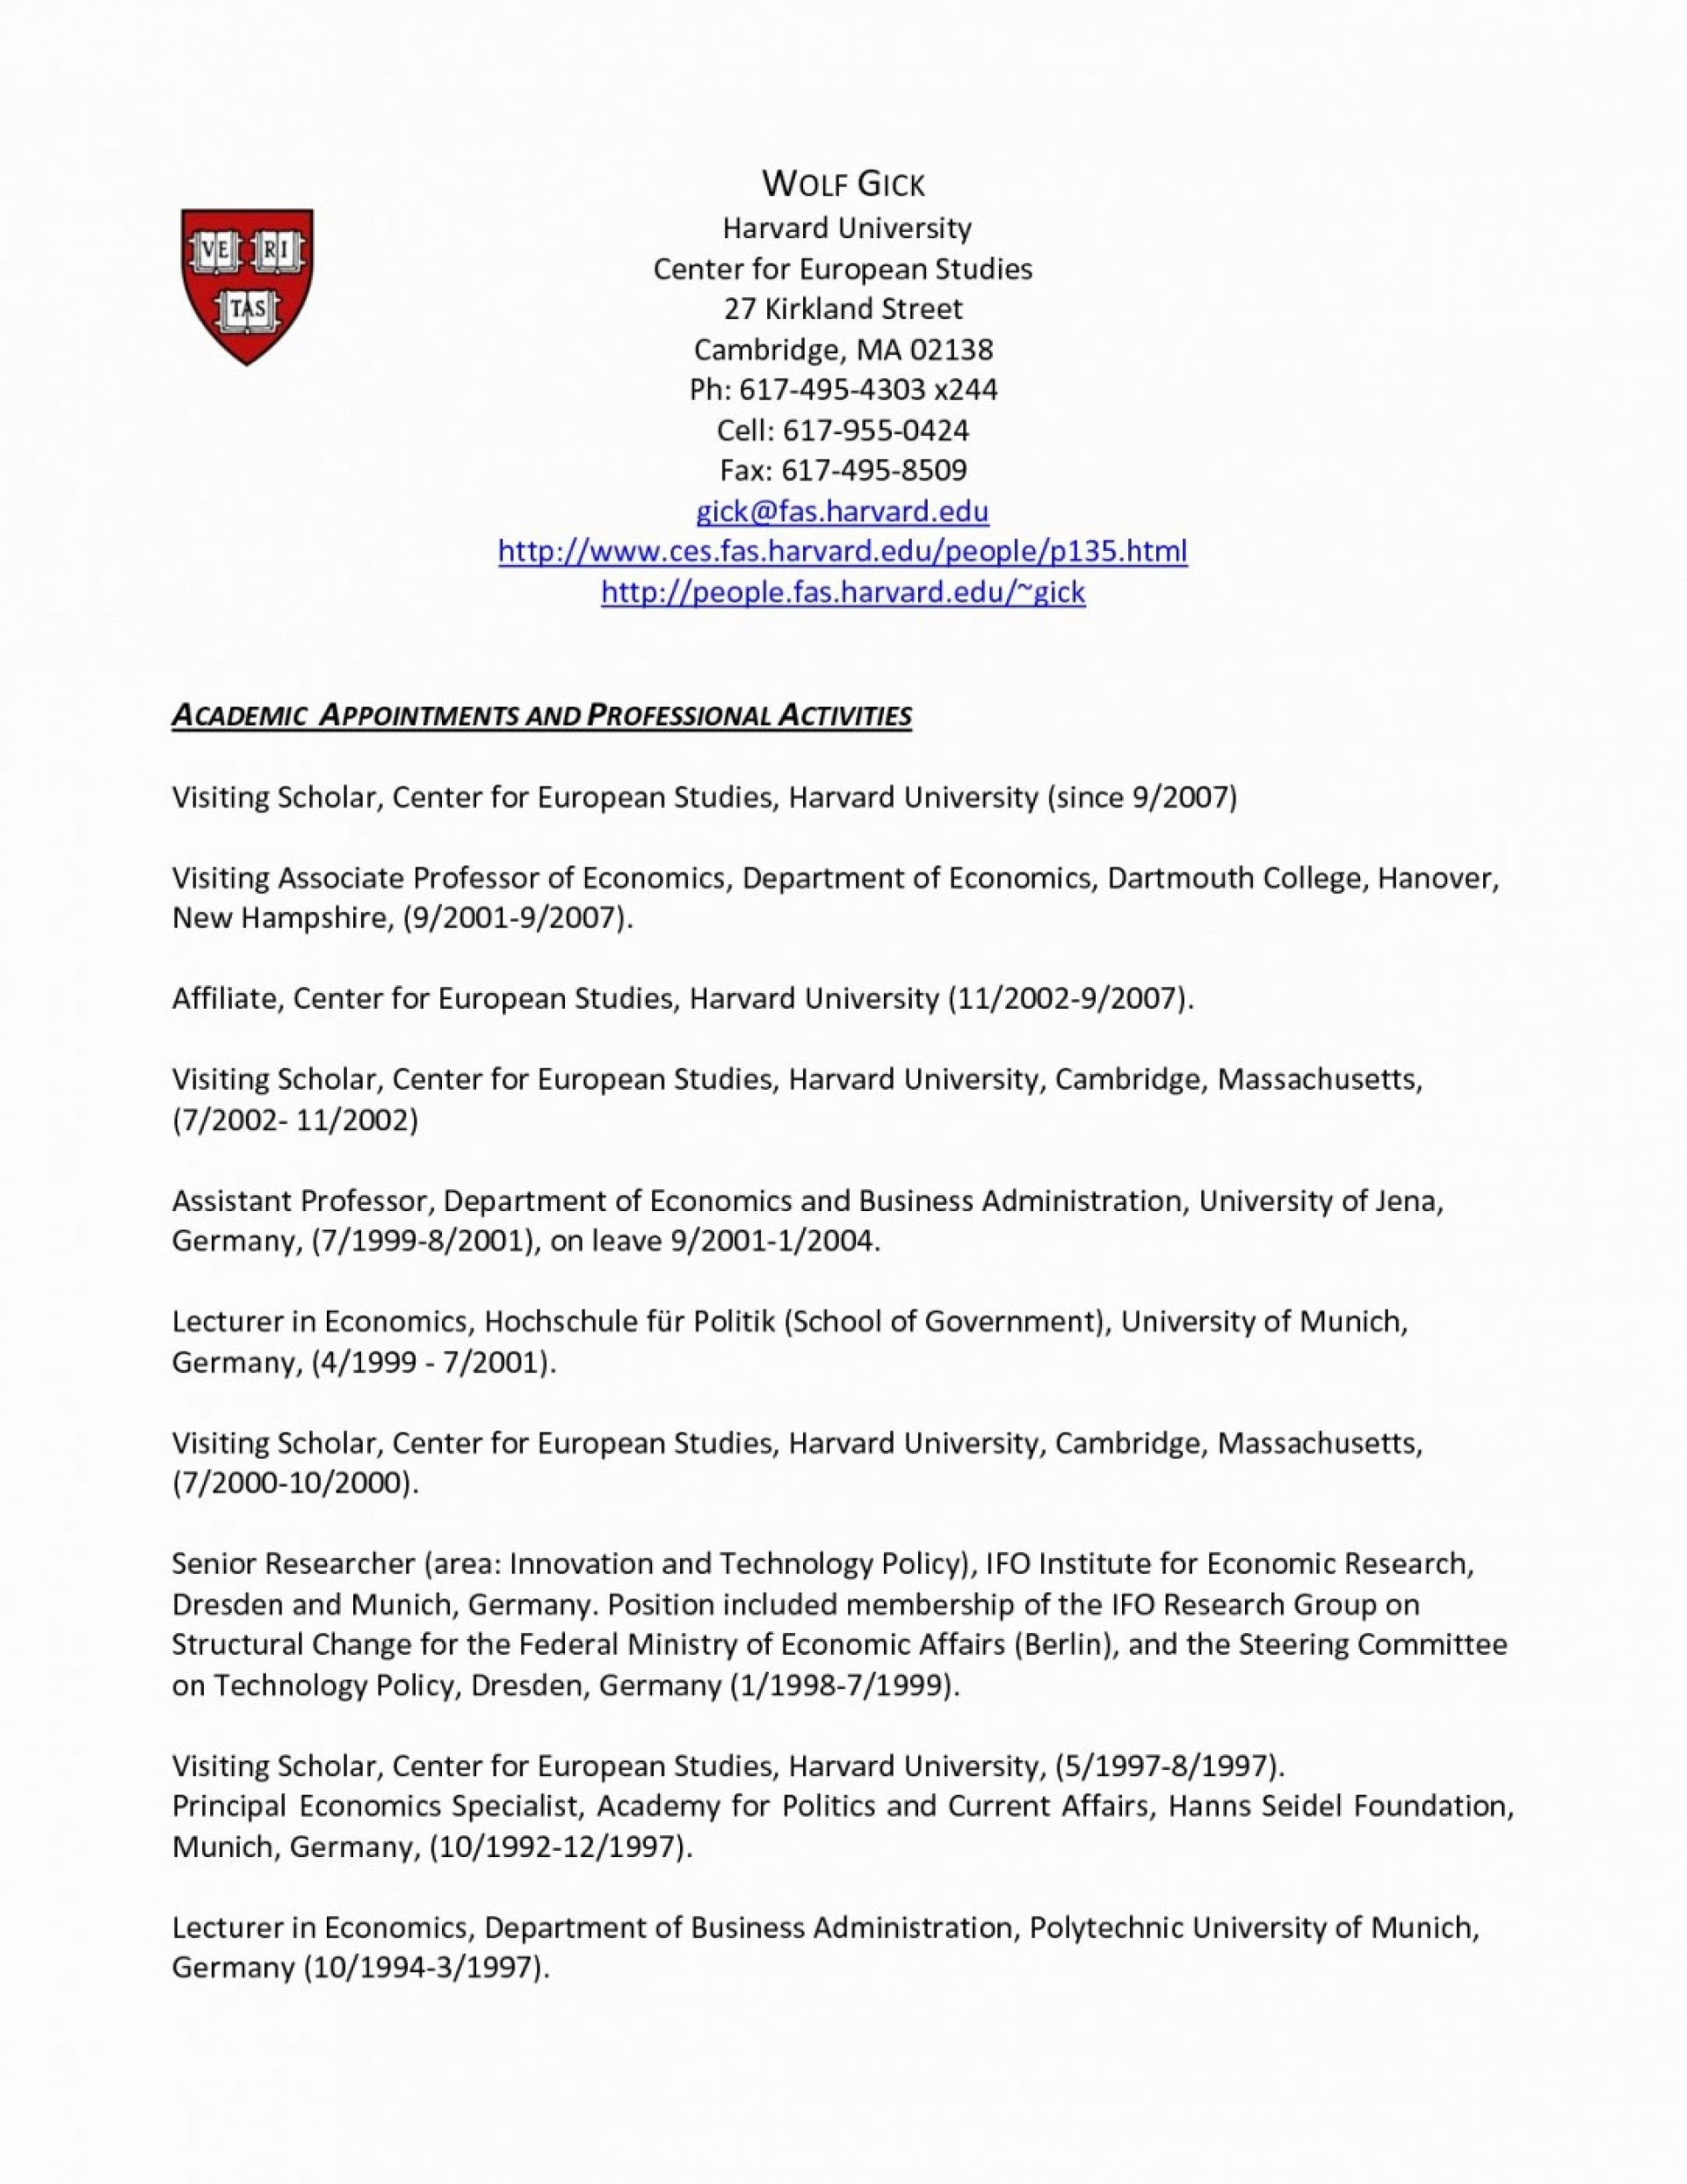 008 Cover Letter Sample Harvard Medical Examples Luxury College Essays I Essay Example Fantastic Accepted Business School Reddit Book 1920